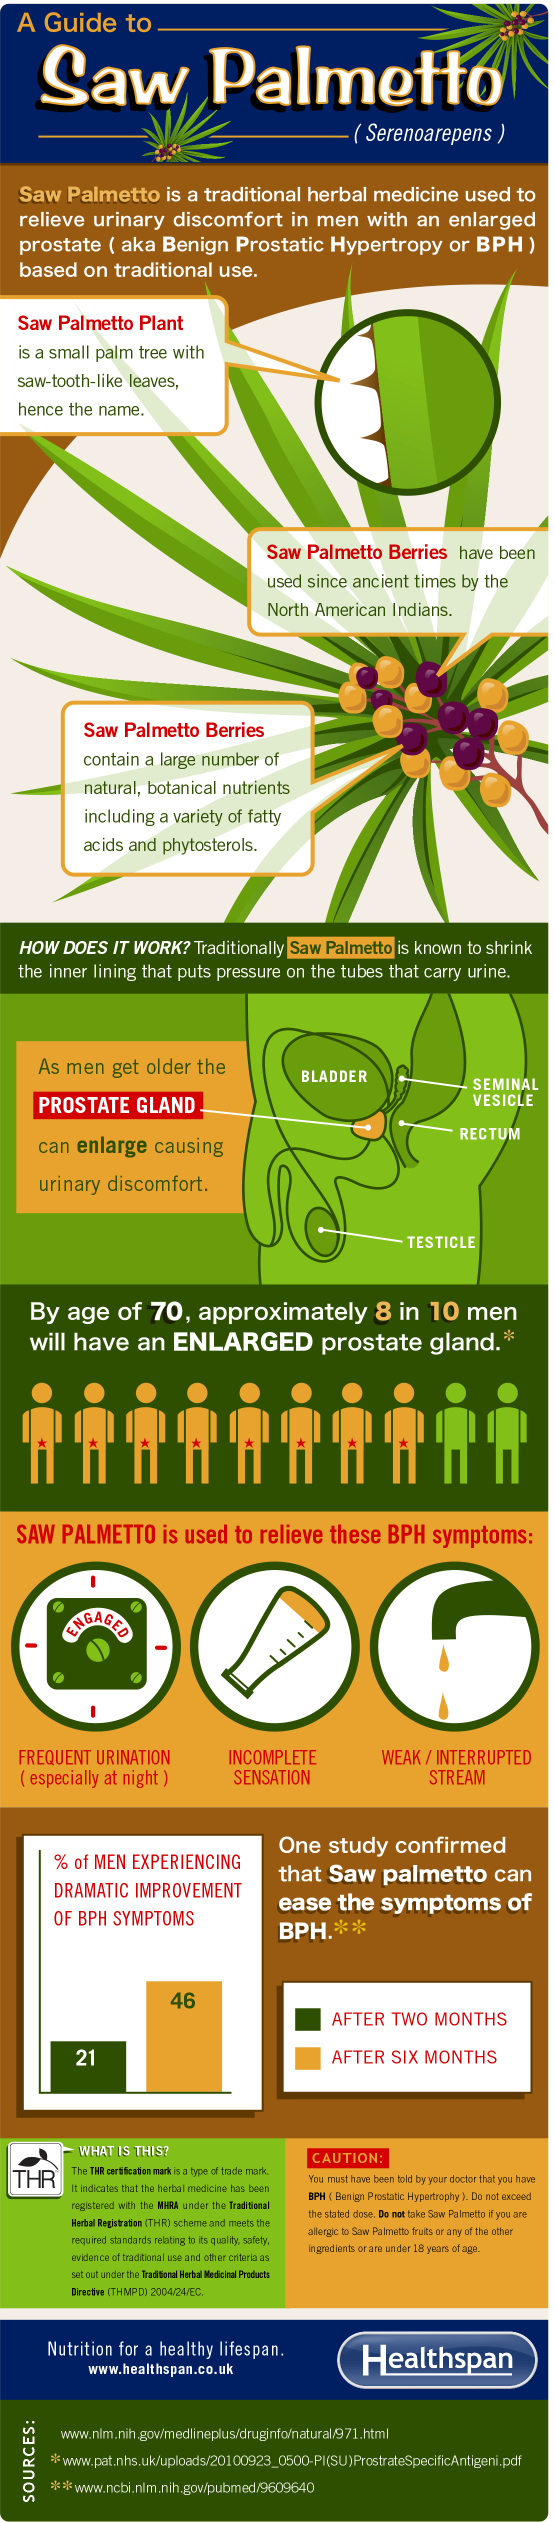 Saw Palmetto - The benefits of saw palmetto for an enlarged prostate - infographic - Healthspan